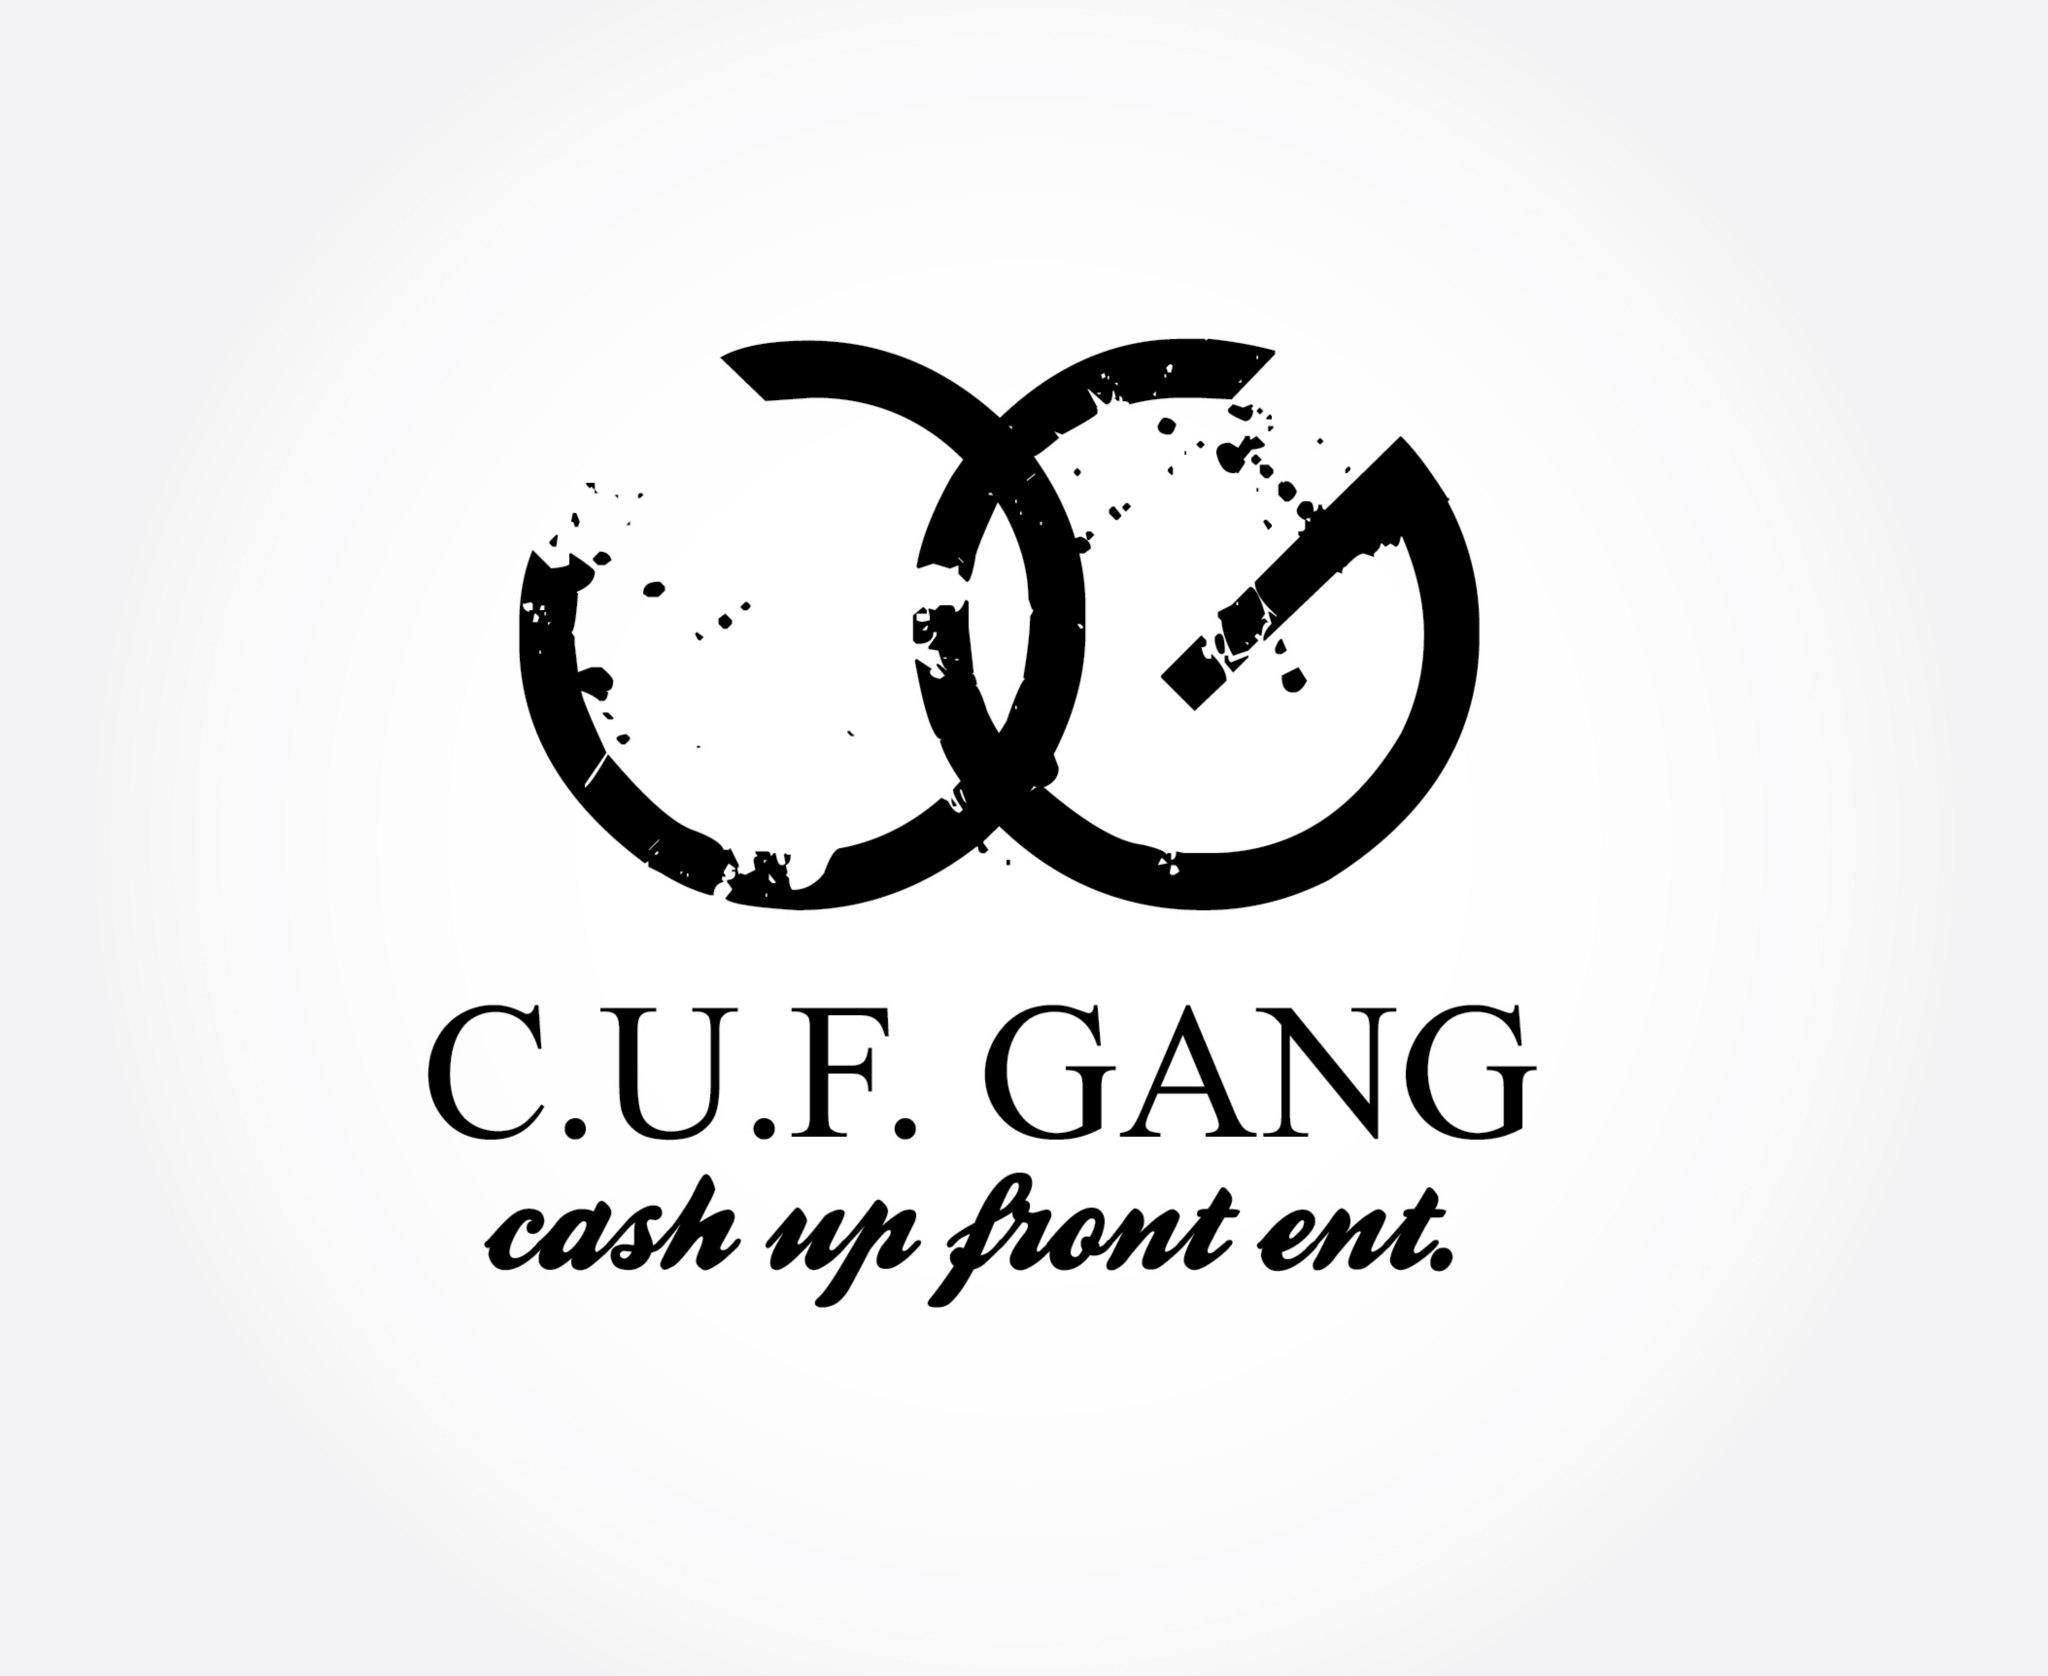 gang logo design - photo #7